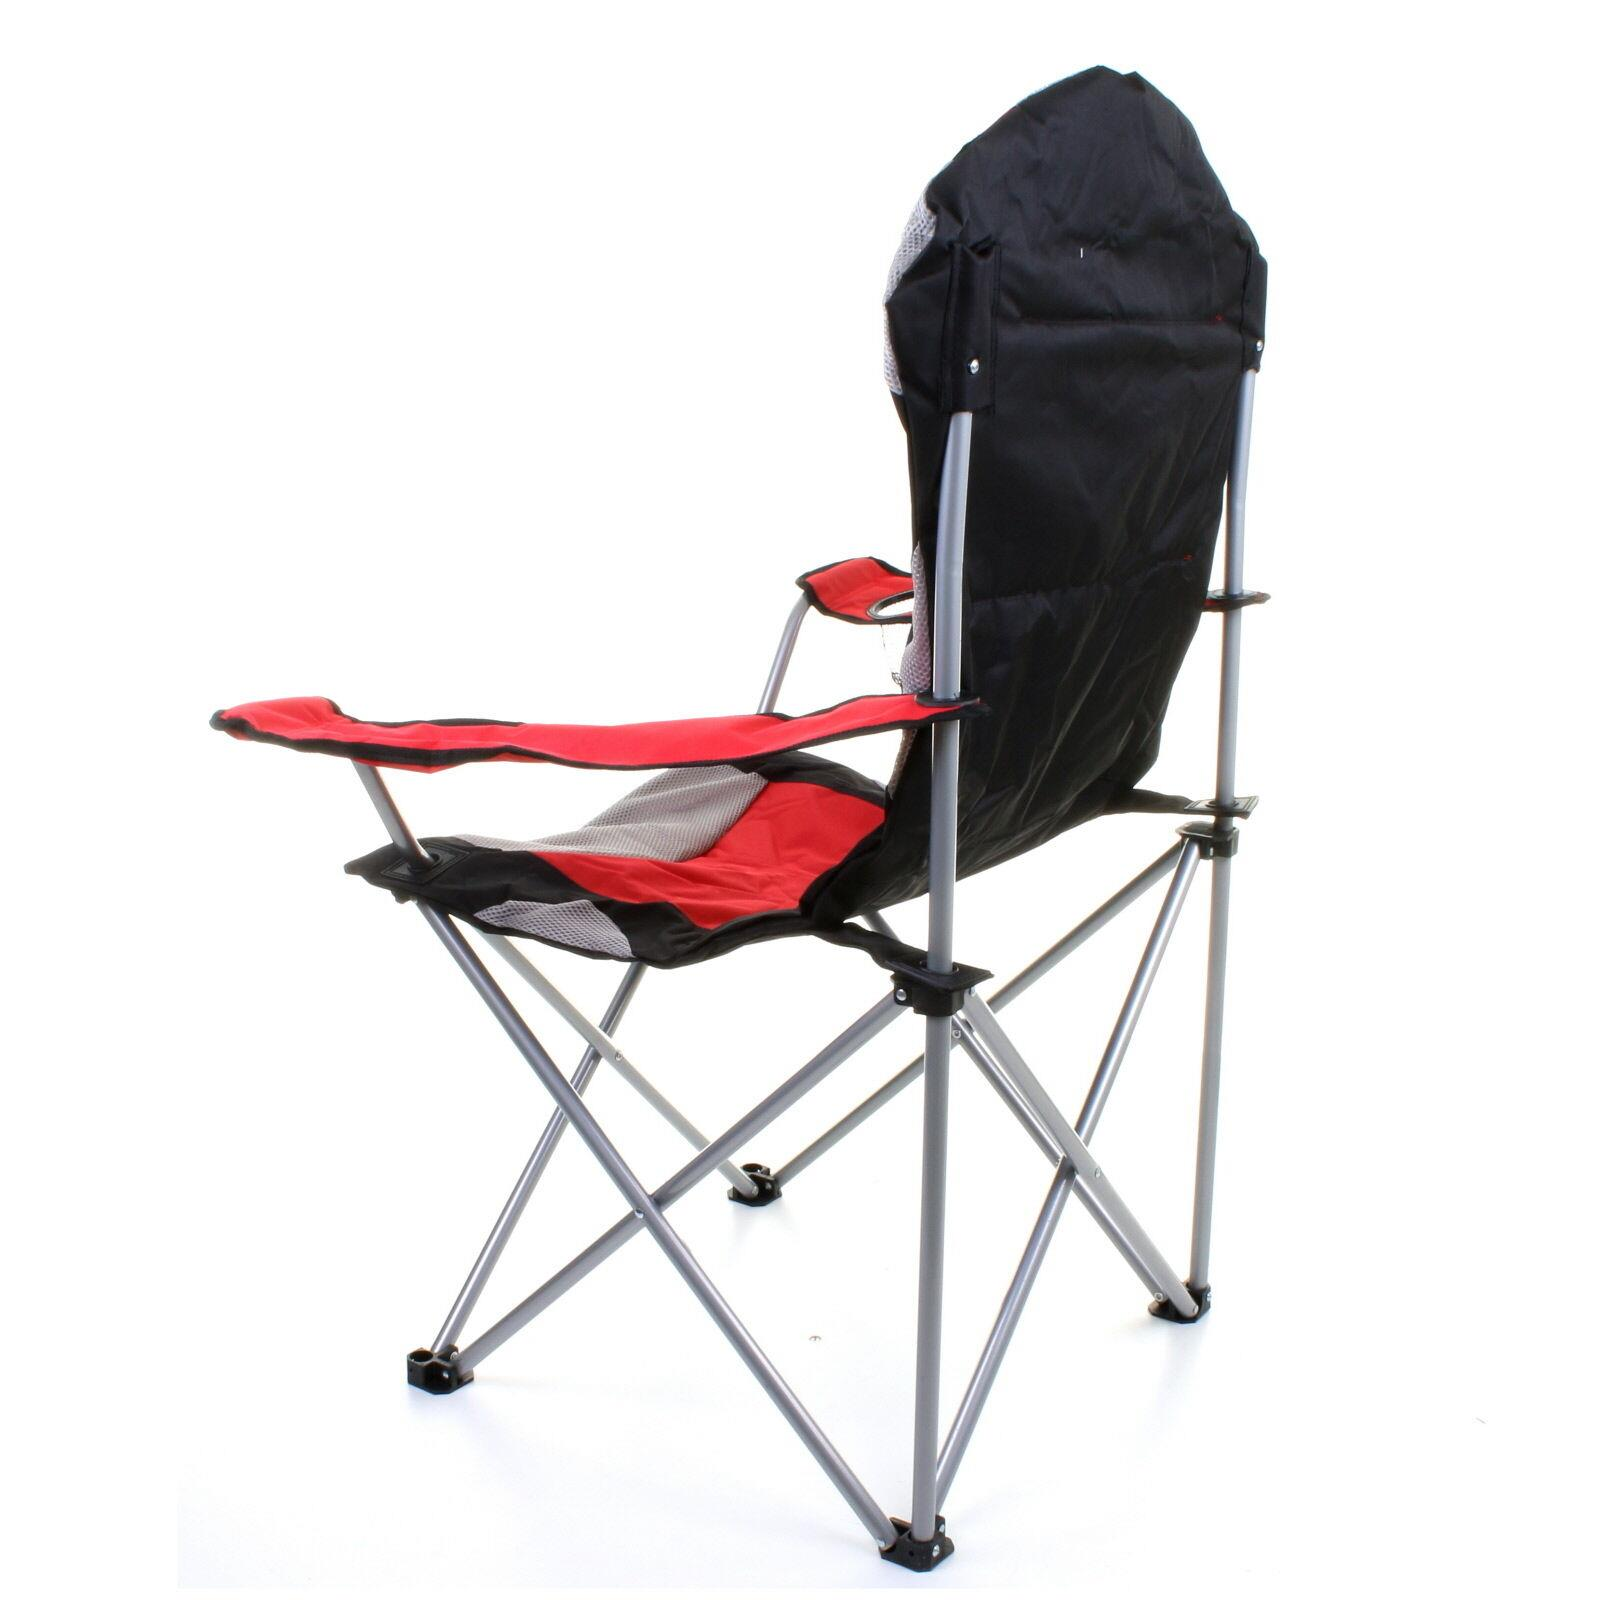 thumbnail 13 - Folding Camping Deluxe Chairs Heavy Duty Luxury Padded with Cup Holder High Back